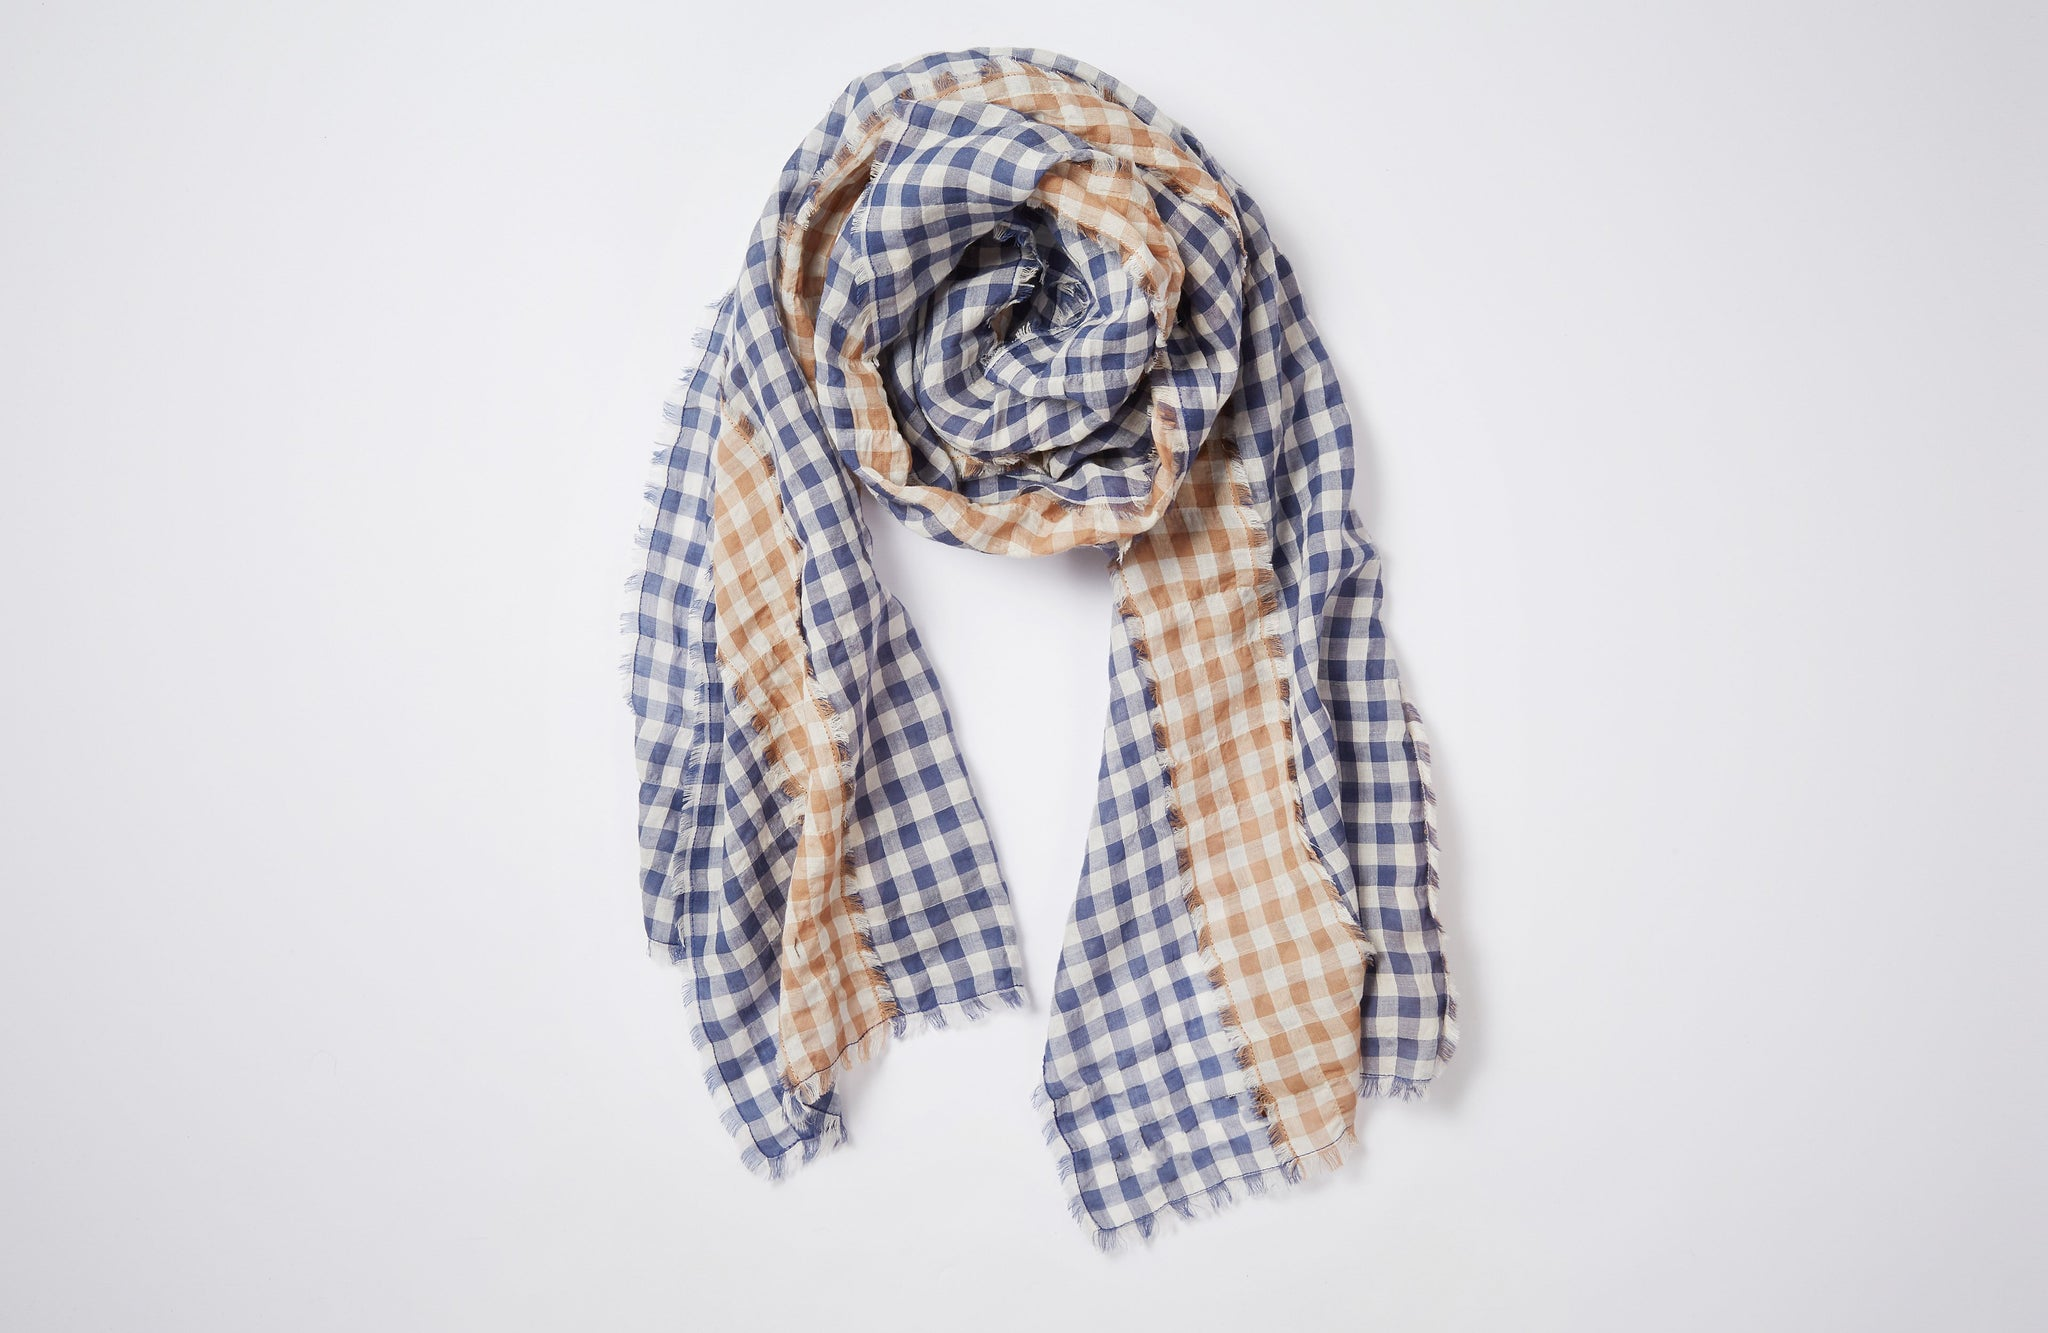 The Mixed Gingham Scarf